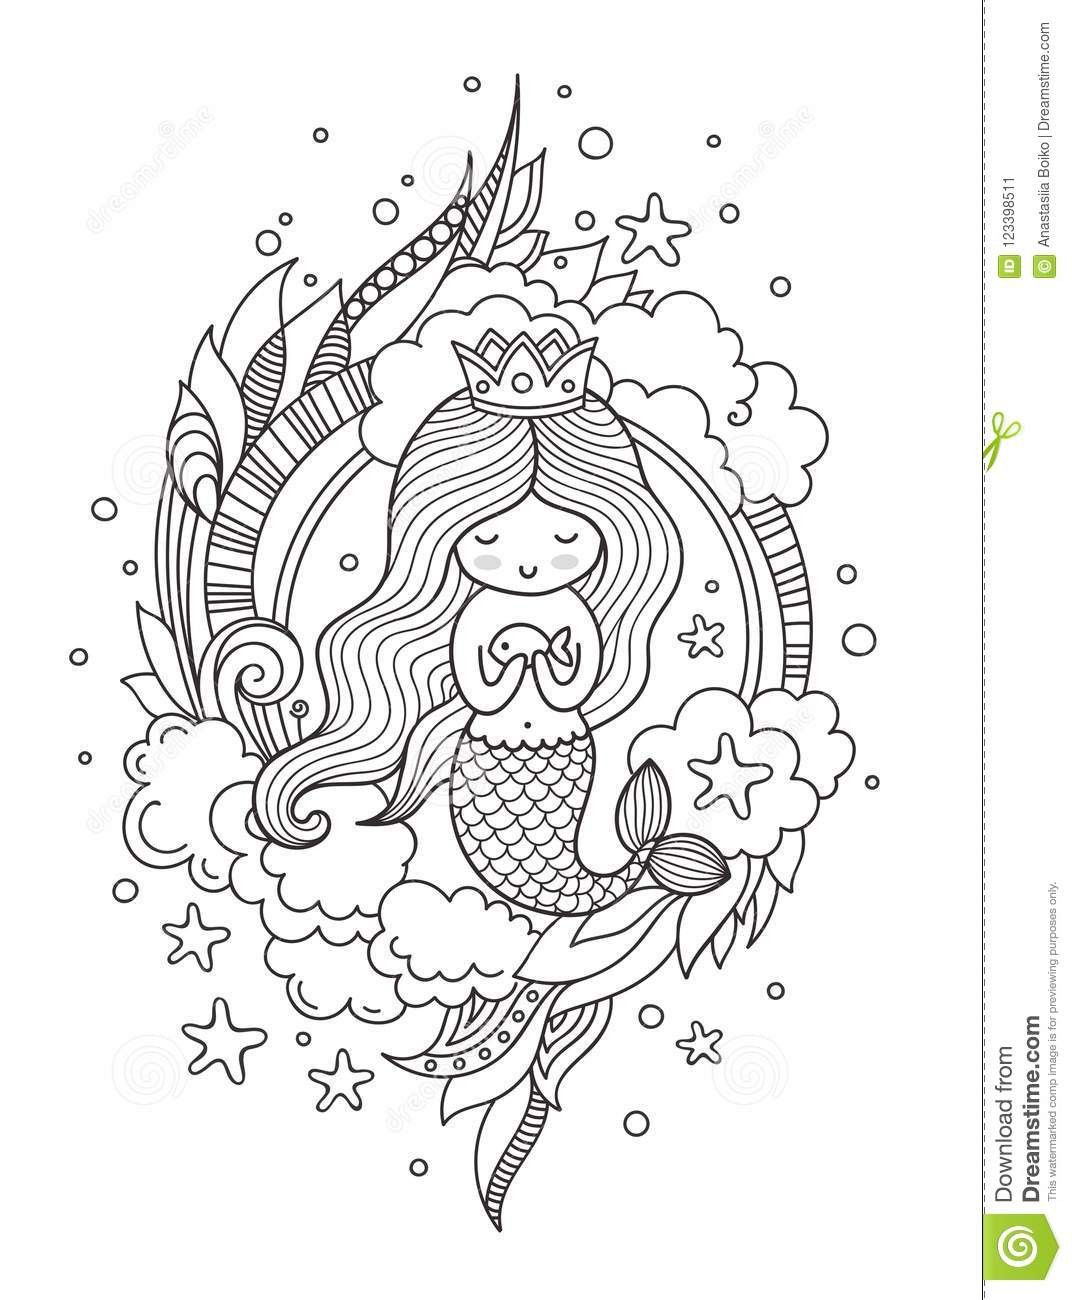 Mermaid Queen Coloring Page Youngandtae Com Mermaid Coloring Pages Princess Coloring Pages Horse Coloring Pages